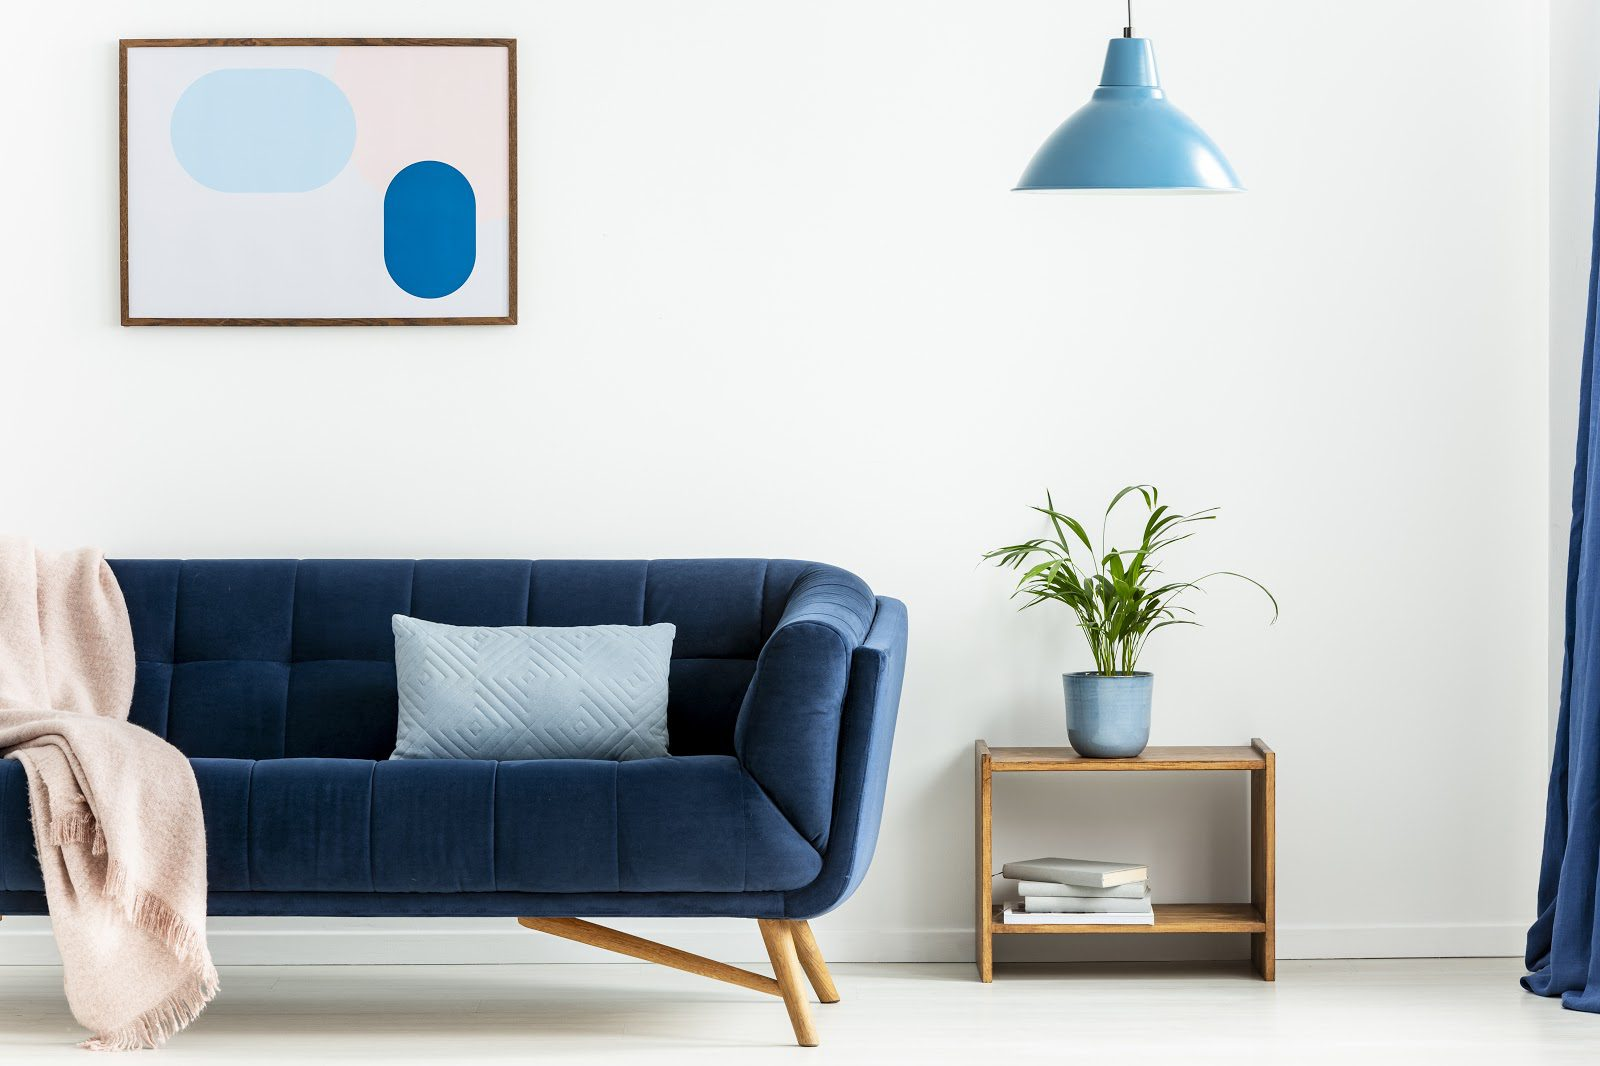 Choose a cohesive color scheme for a mid-century modern living room